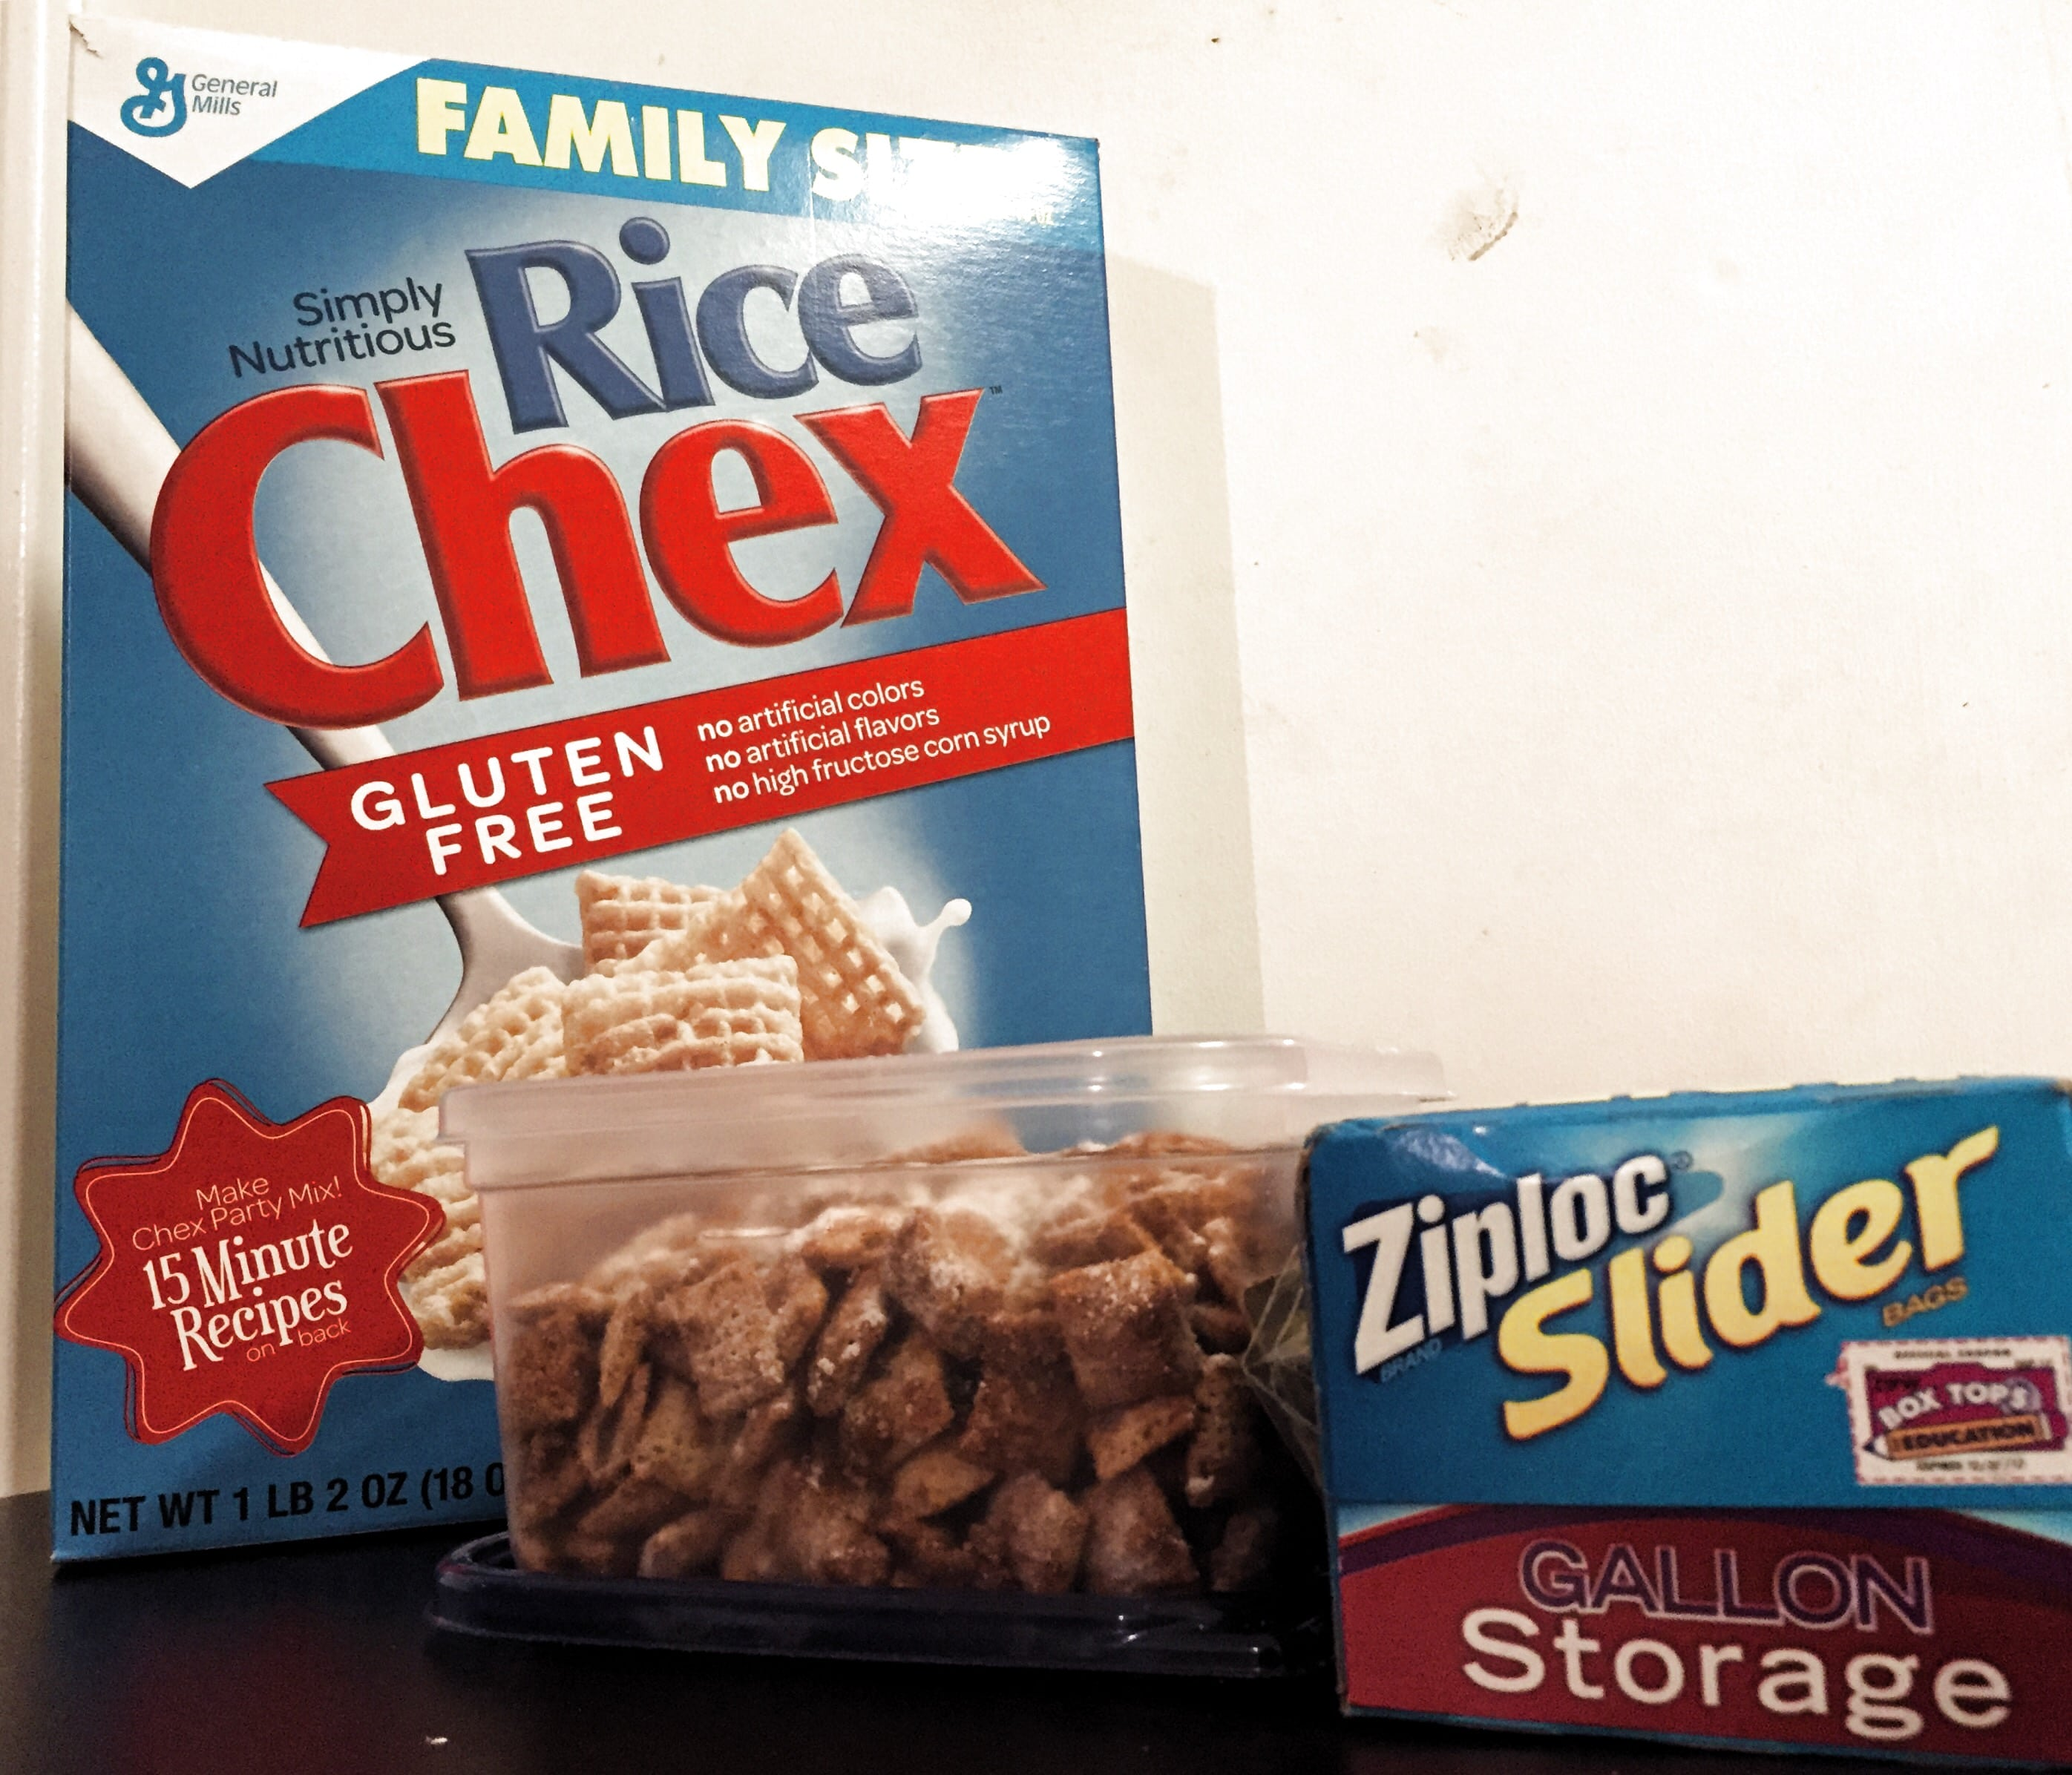 Chex Ziploc Holiday